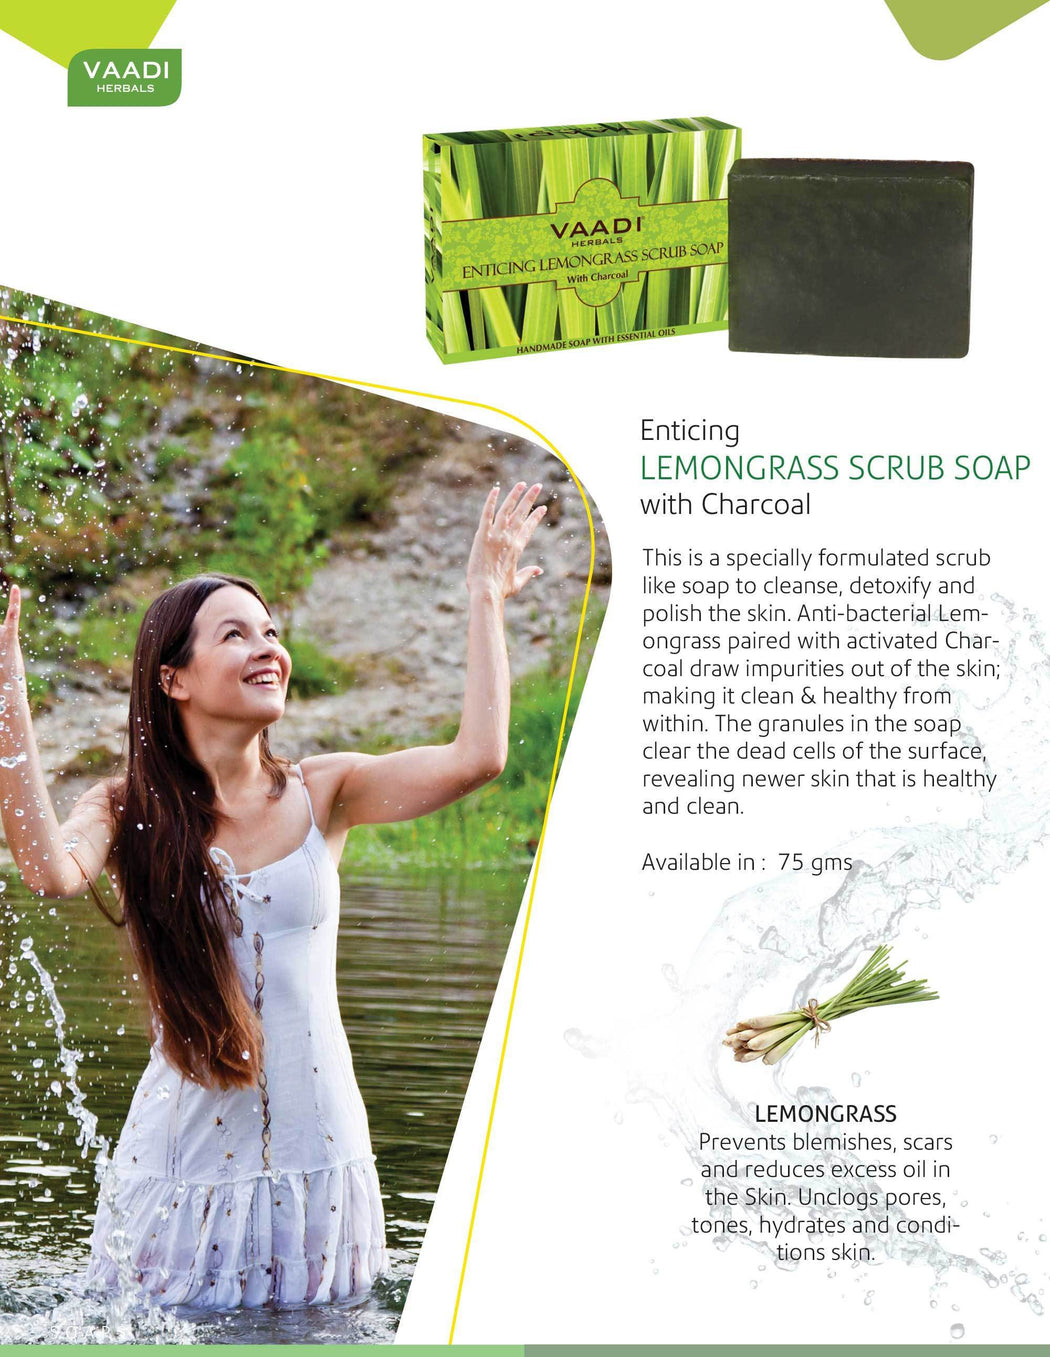 Enticing Organic Lemongrass Soap with Charcoal - Exfoliates & Polishes Skin - Makes Skin Smooth (75 gms / 2.7 oz)